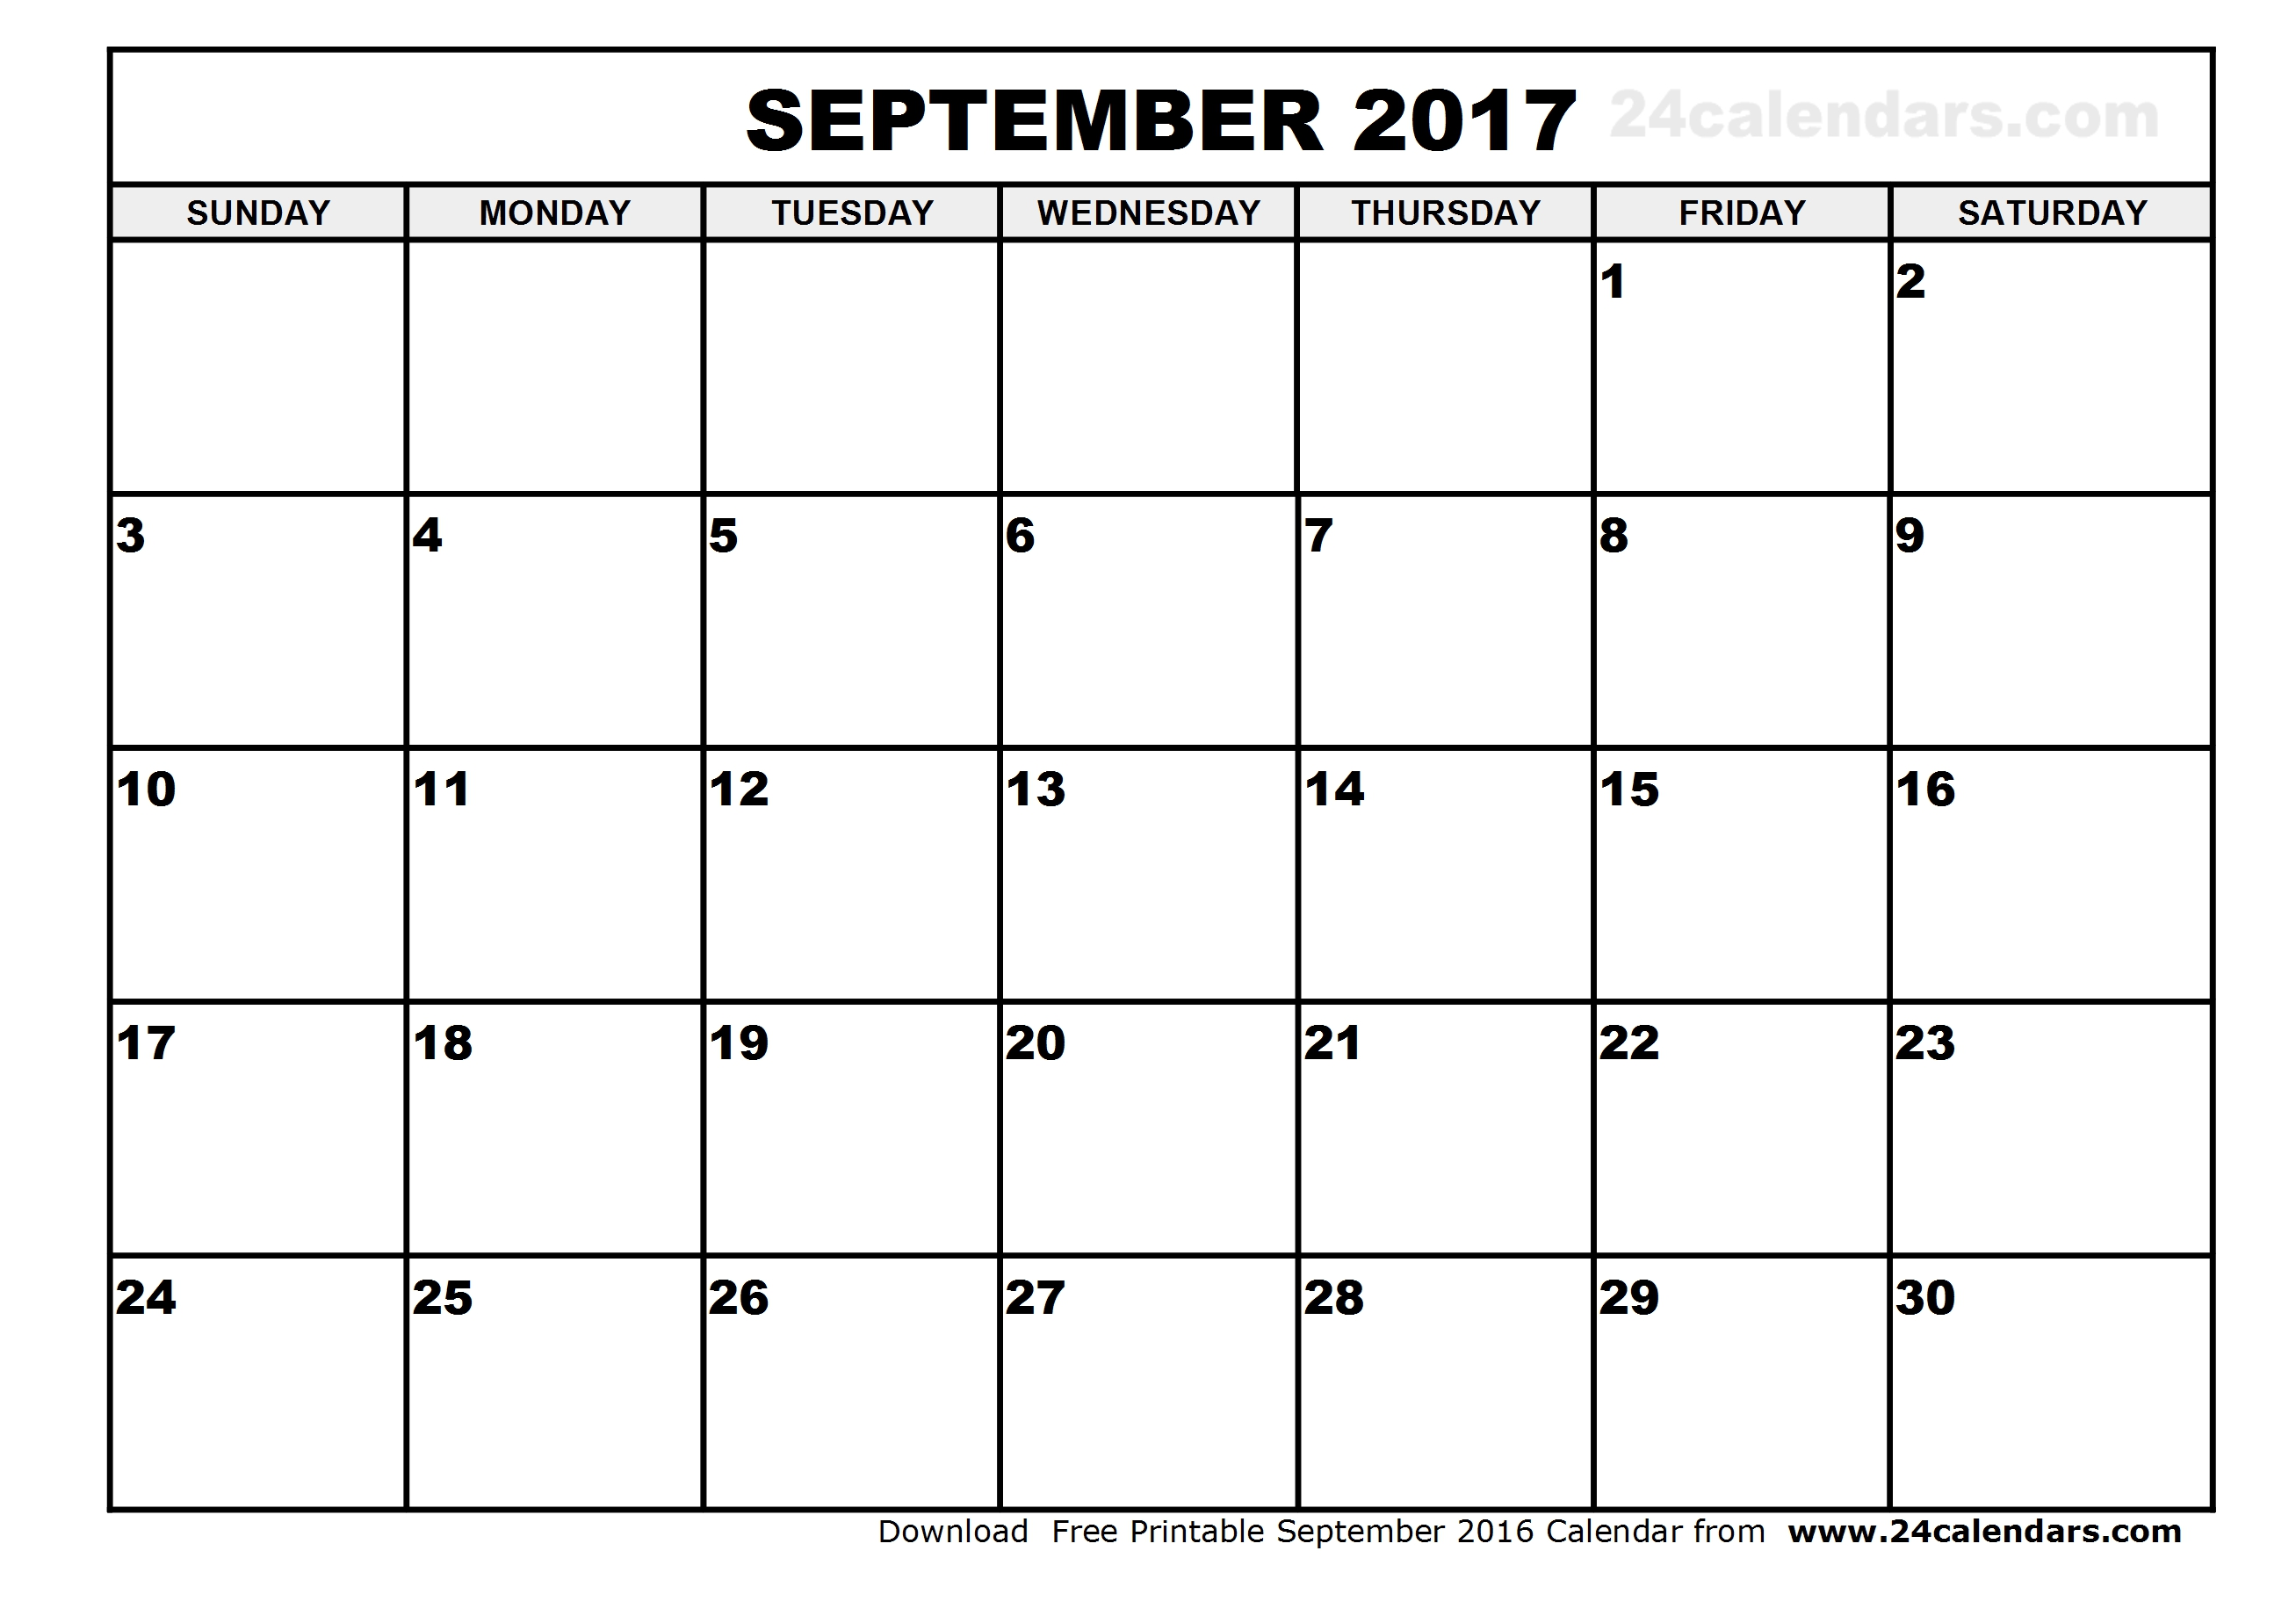 September 2017 Calendar Template | weekly calendar template